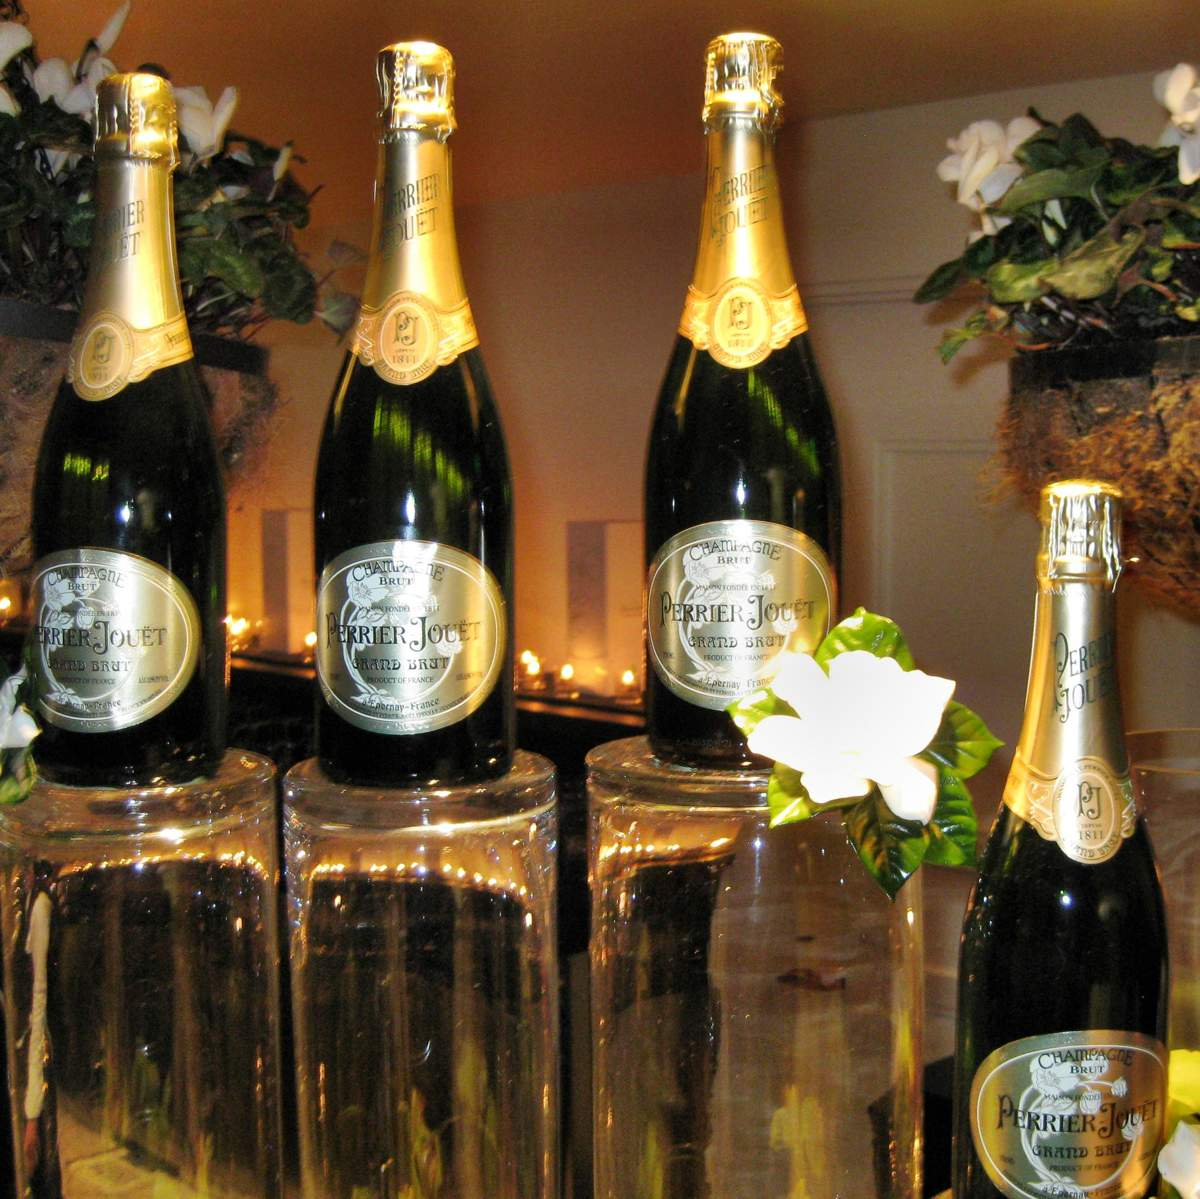 http://vlasenko.at.ua/News3/perrier-jouet-grand-brut.jpg